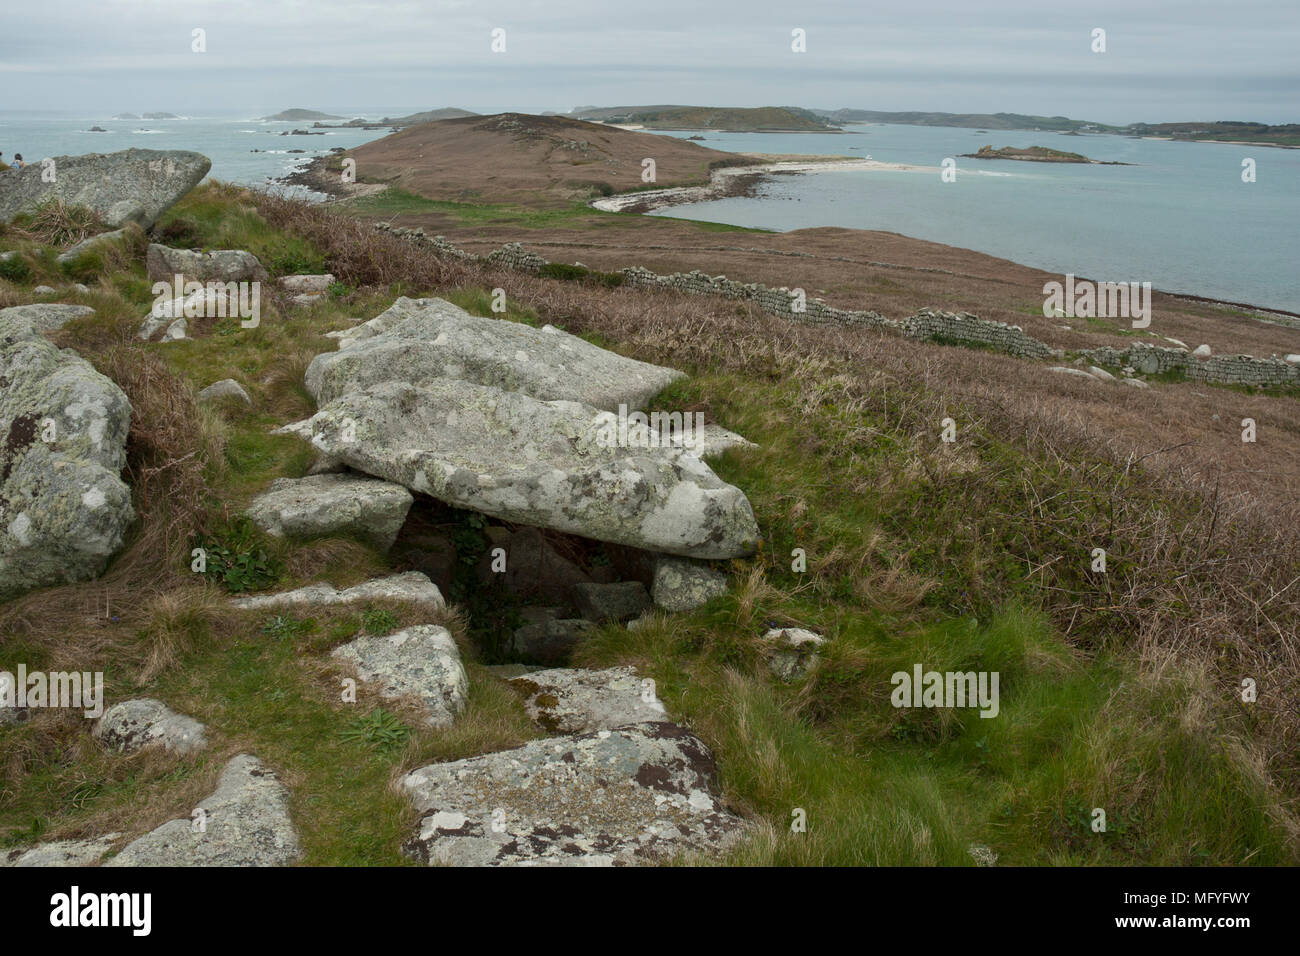 A prehistoric entrance grave with capstones in the foreground with Samson Island and the sea beyond in the background. - Stock Image